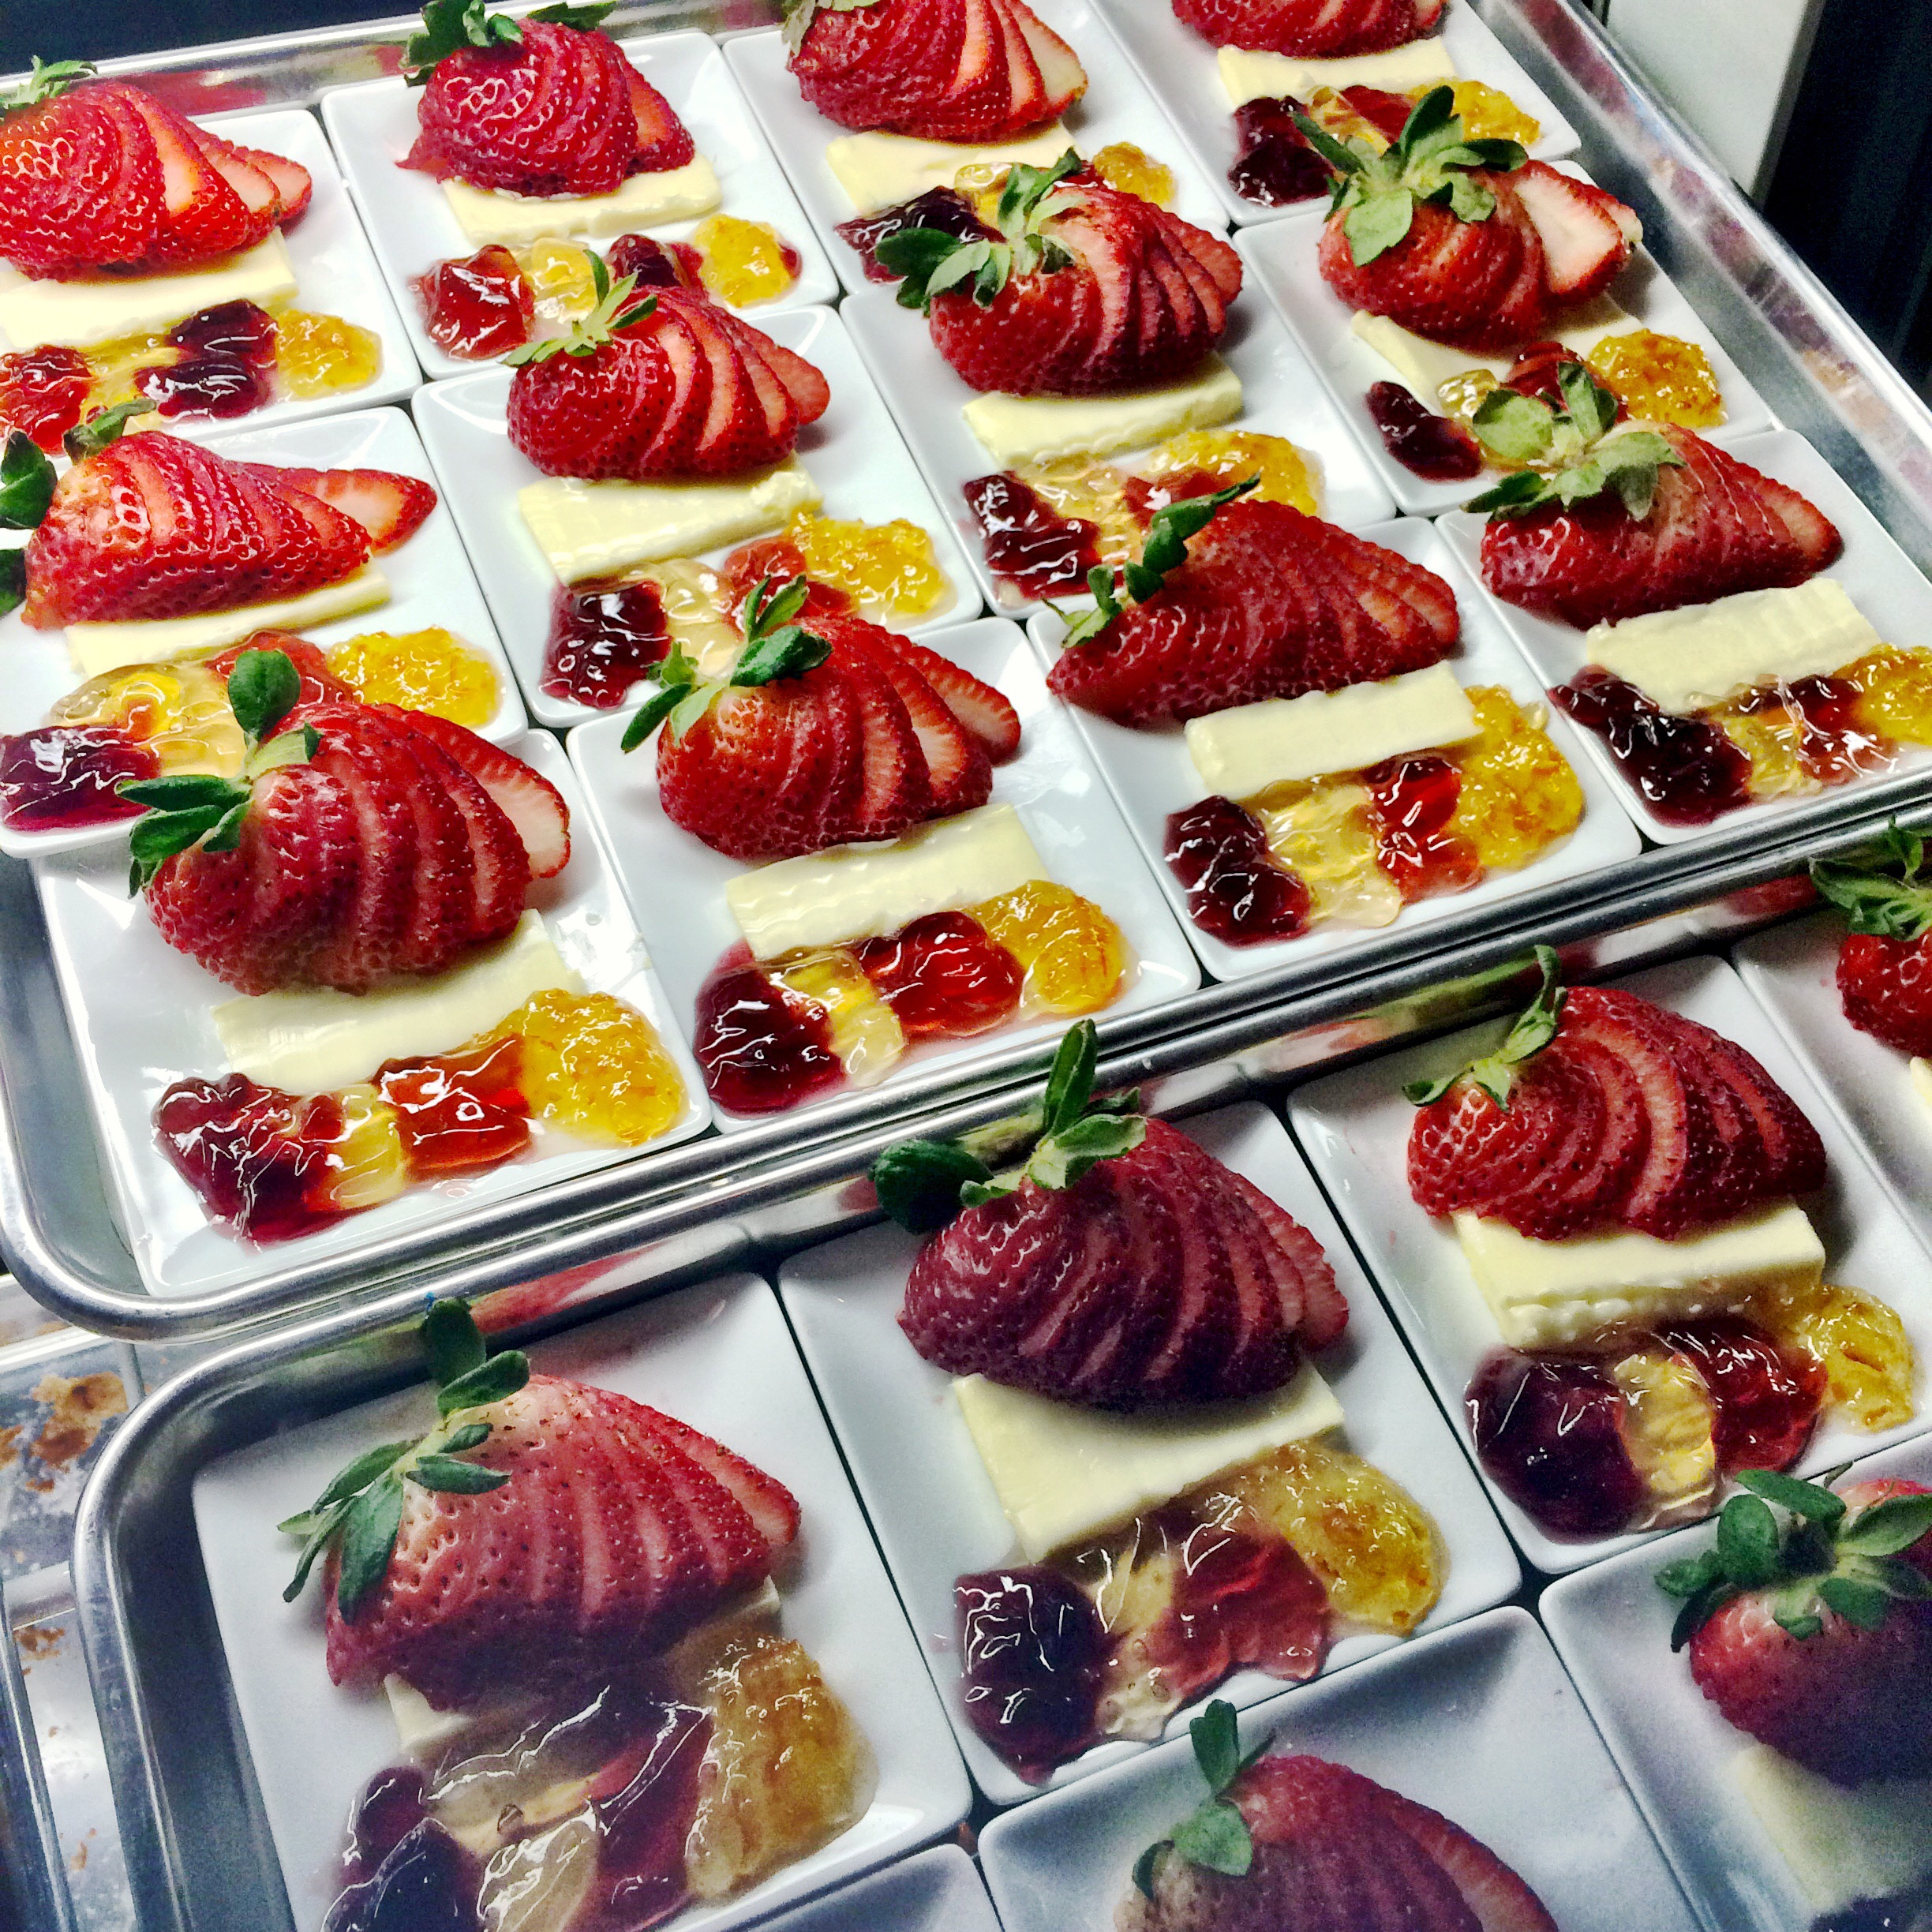 Jellies, butter, strawberries...put that on your pastry and eat it!